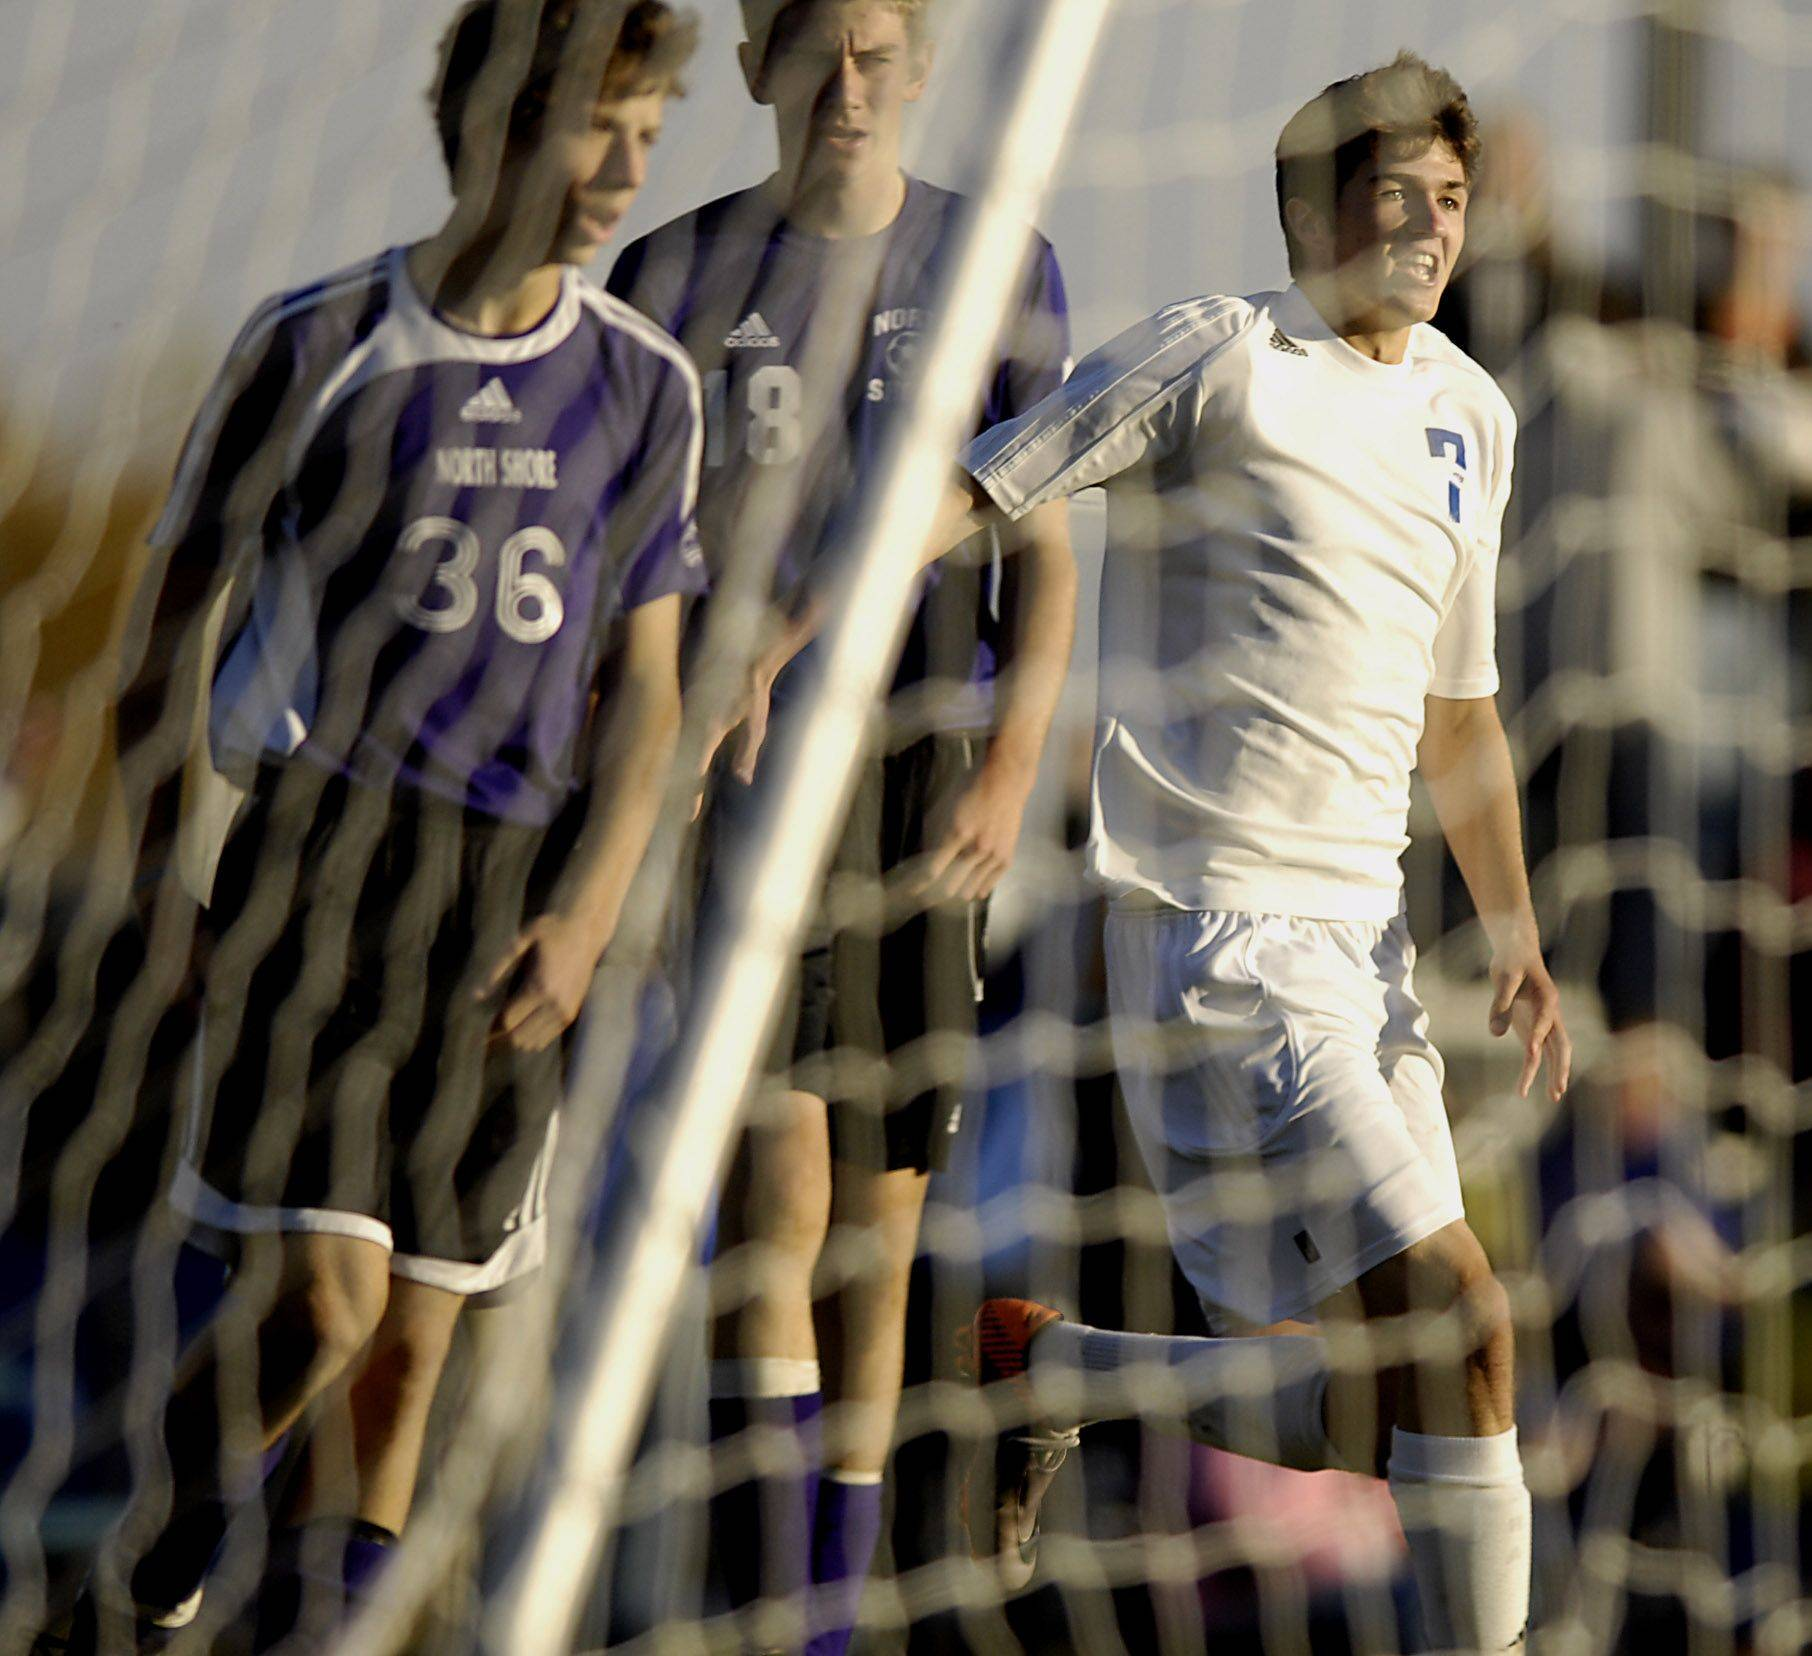 Westminster Christian's Josh Beachler looks for teammates after the second goal against North Shore Country Day for the Class 1A regional championship Tuesday in Elgin.